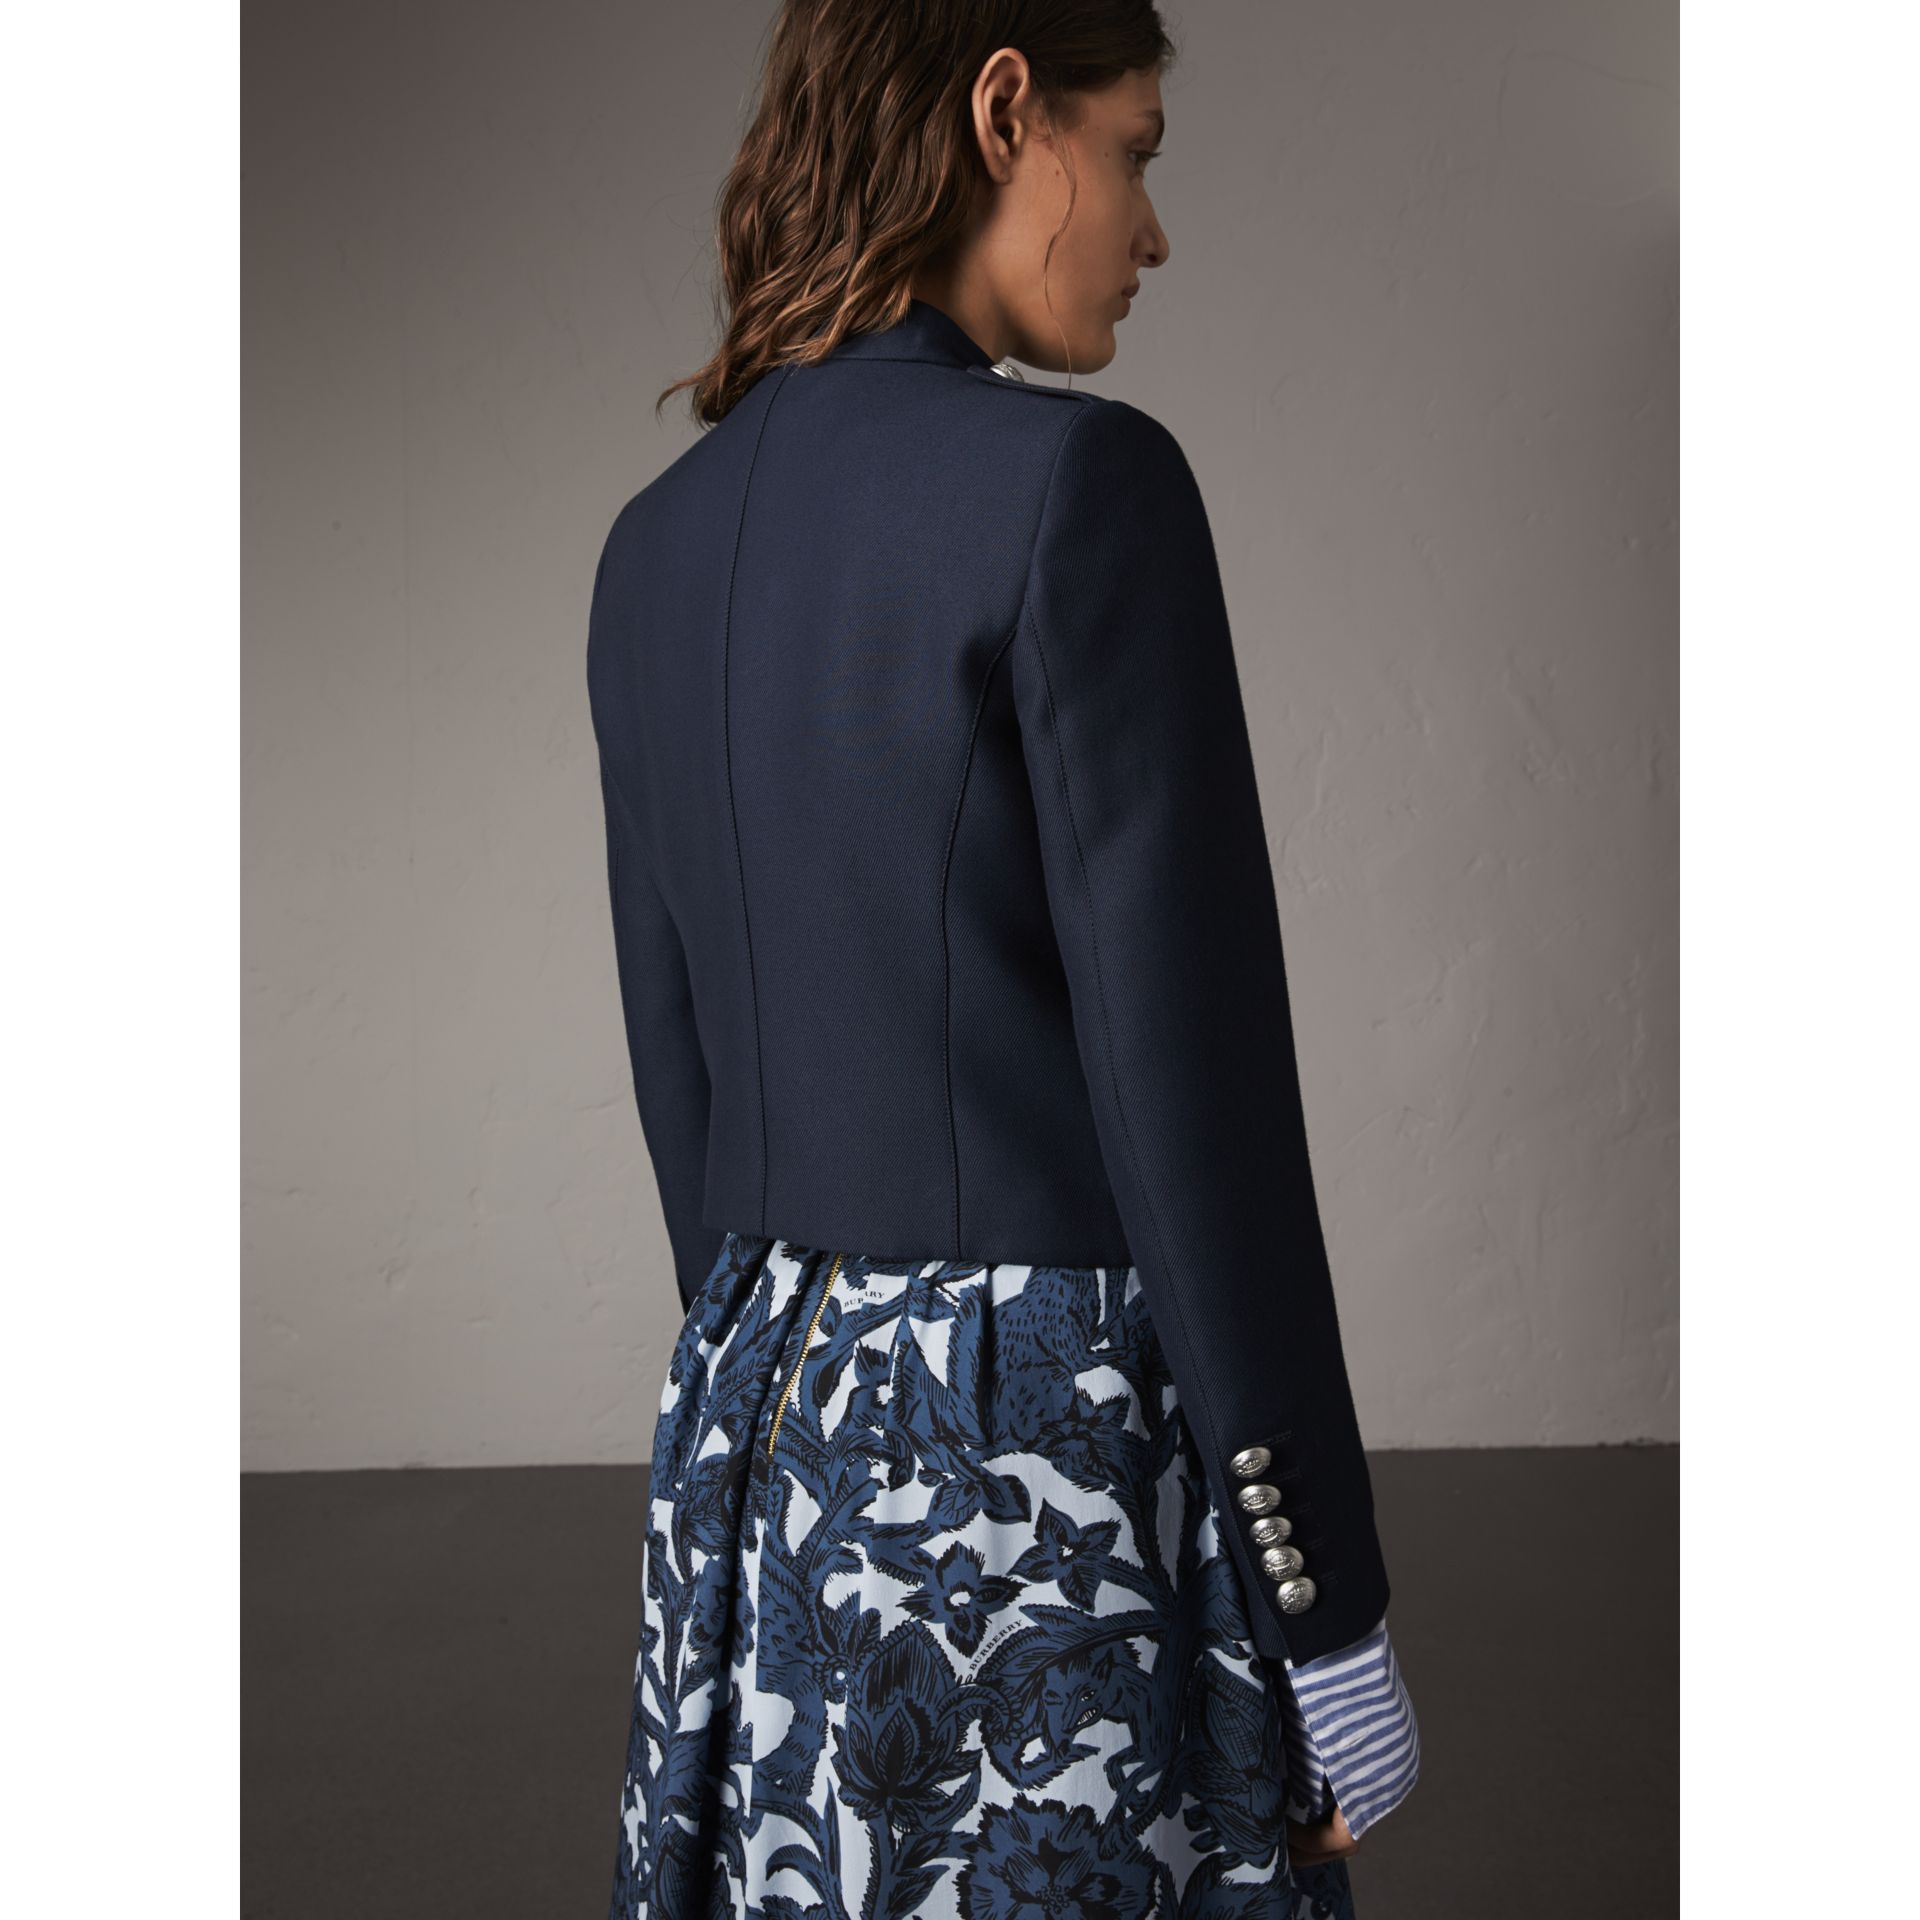 Resin Button Wool Cotton Blend Jacket in Ink Blue - Women | Burberry - gallery image 3